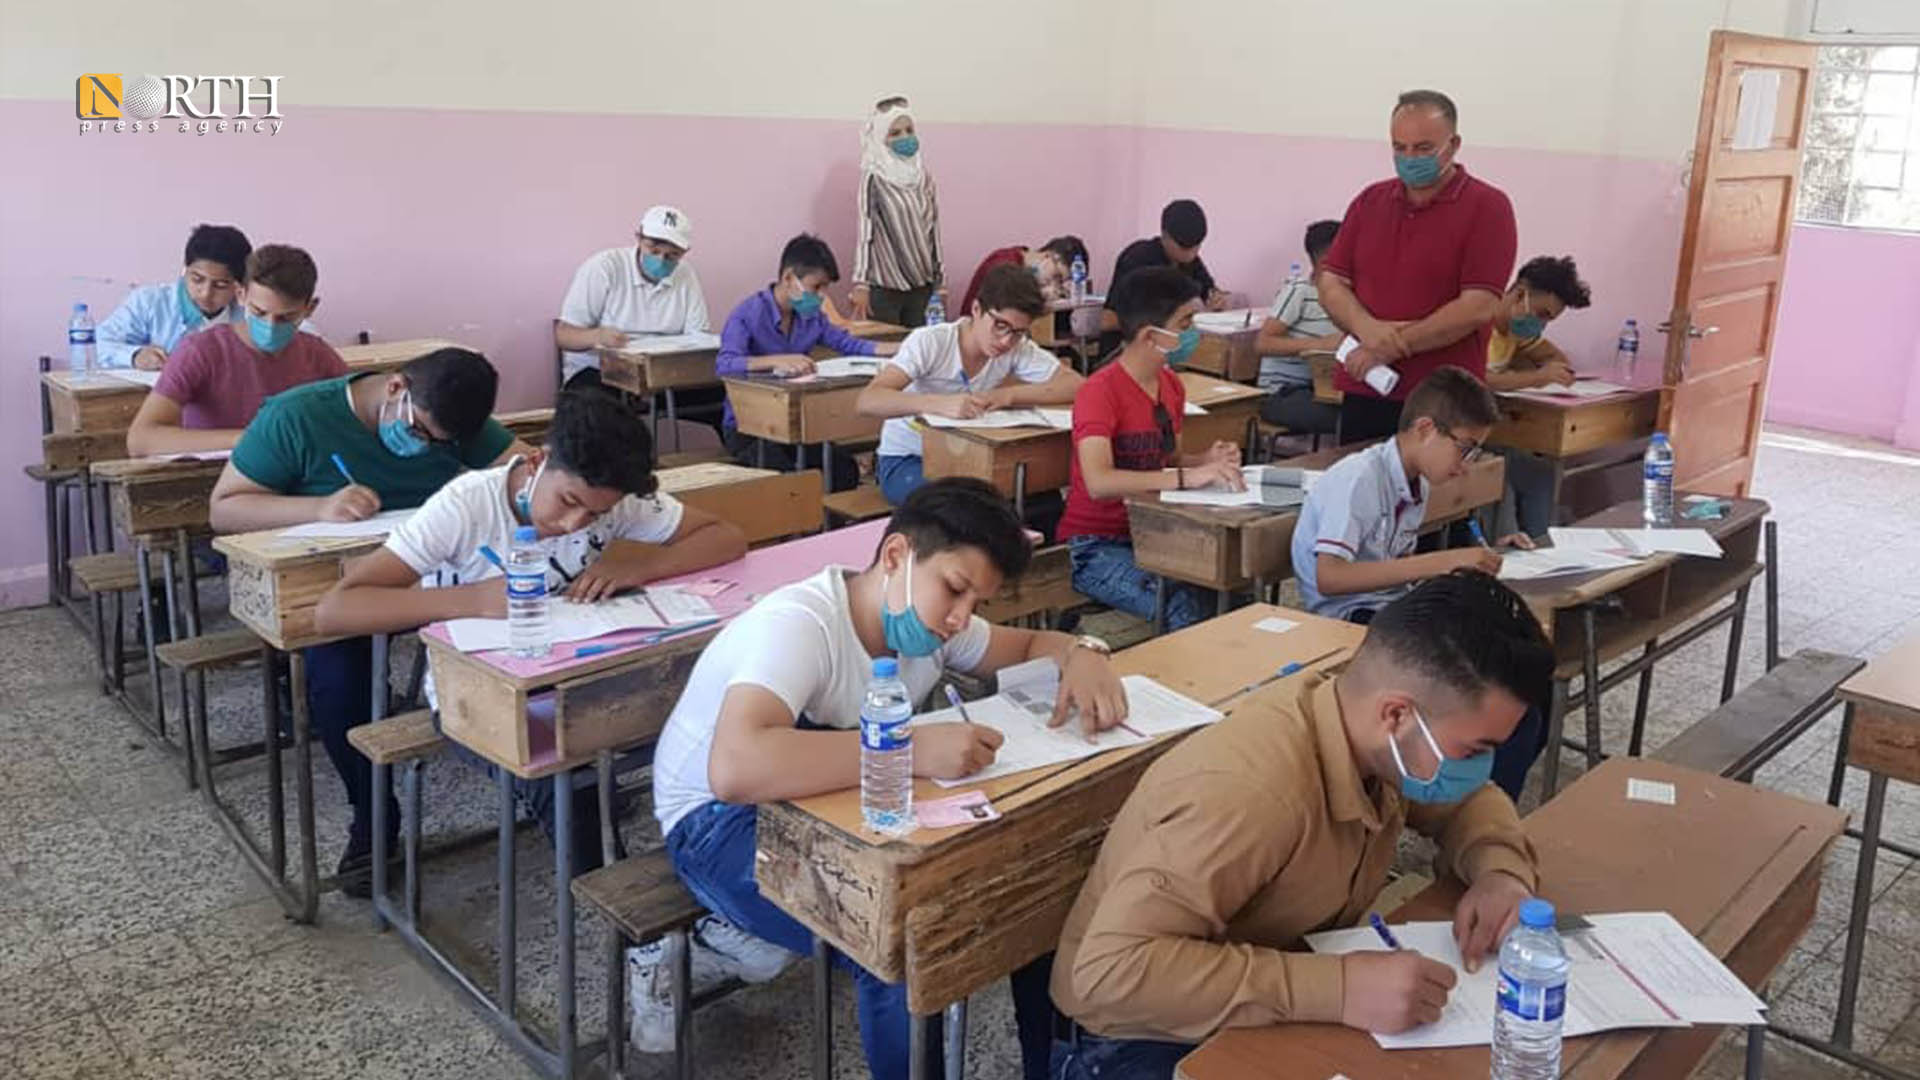 High school while setting their exams in a school in Aleppo – North Press.